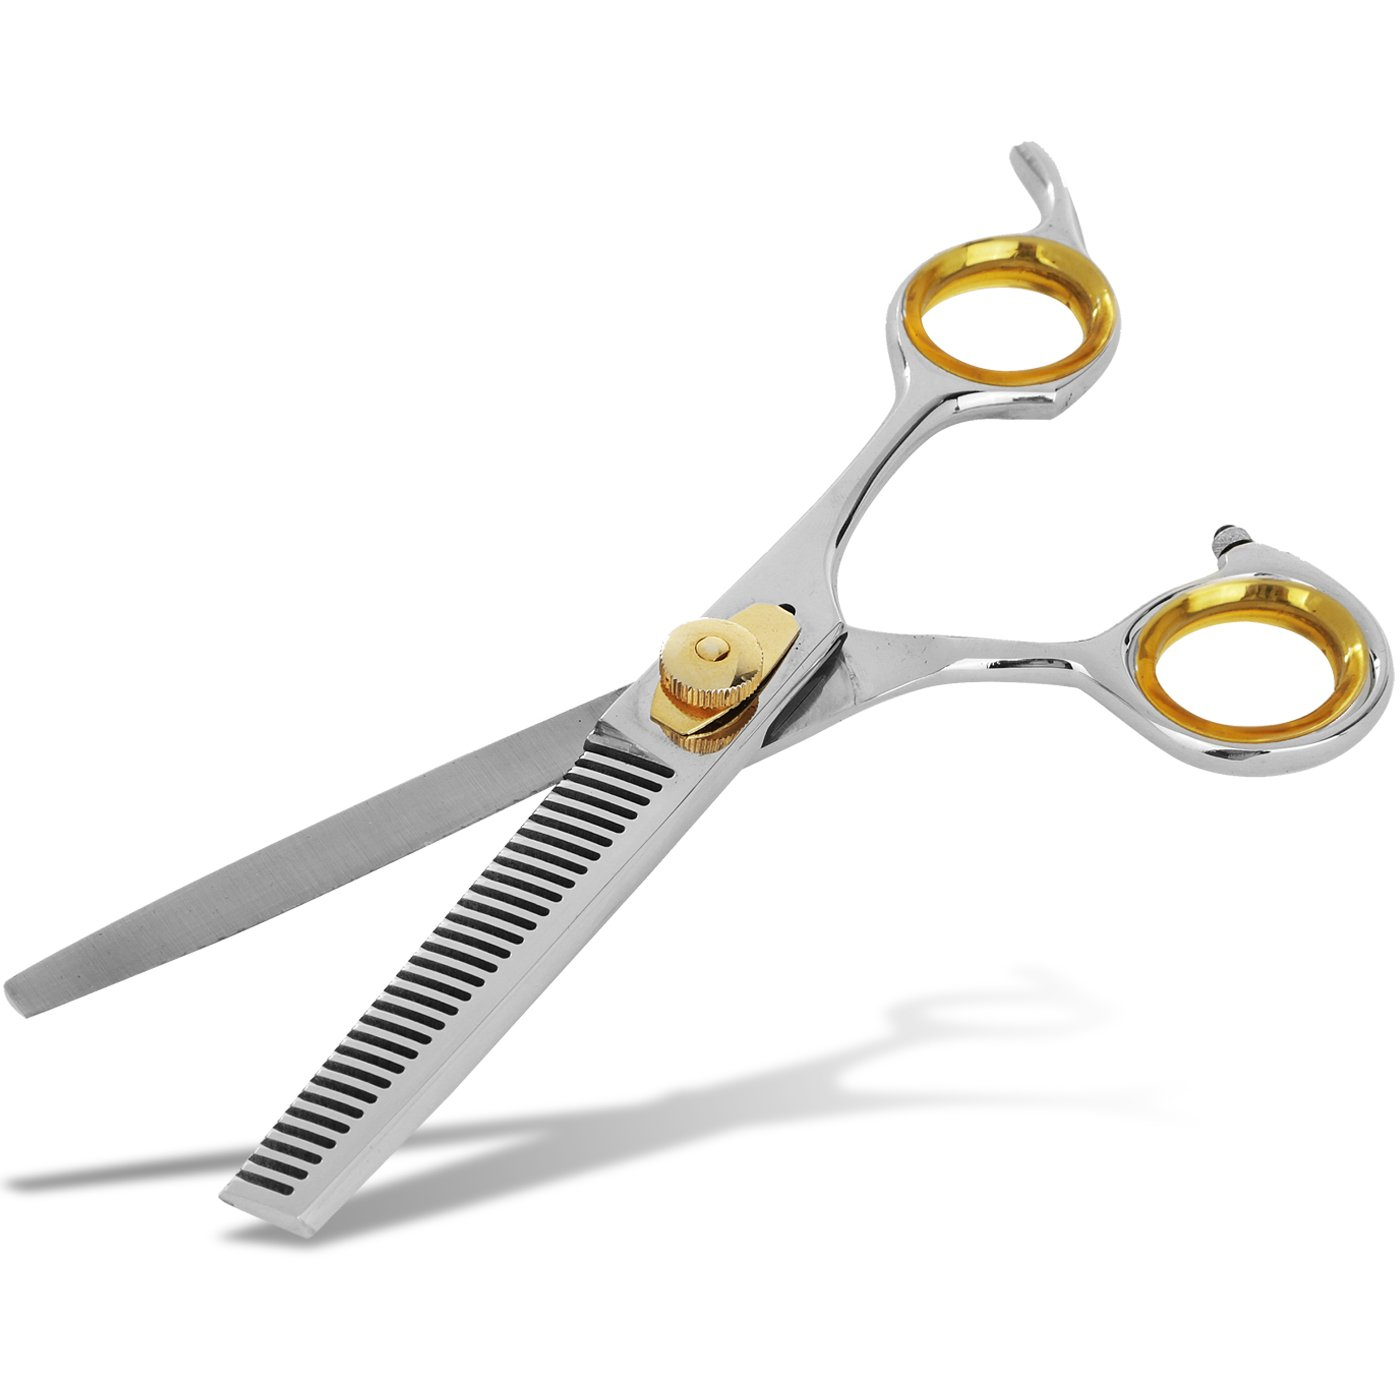 SHARF Professional Thinning Barber Scissors: Sharp 440c Japanese Thinning Shears 6.5''| 30 Teeth Gold Touch Hair Cutting/Texturizing Scissors w/Easy Grip Handles| Must-Have Hairdresser & Home Scissors by Sharf